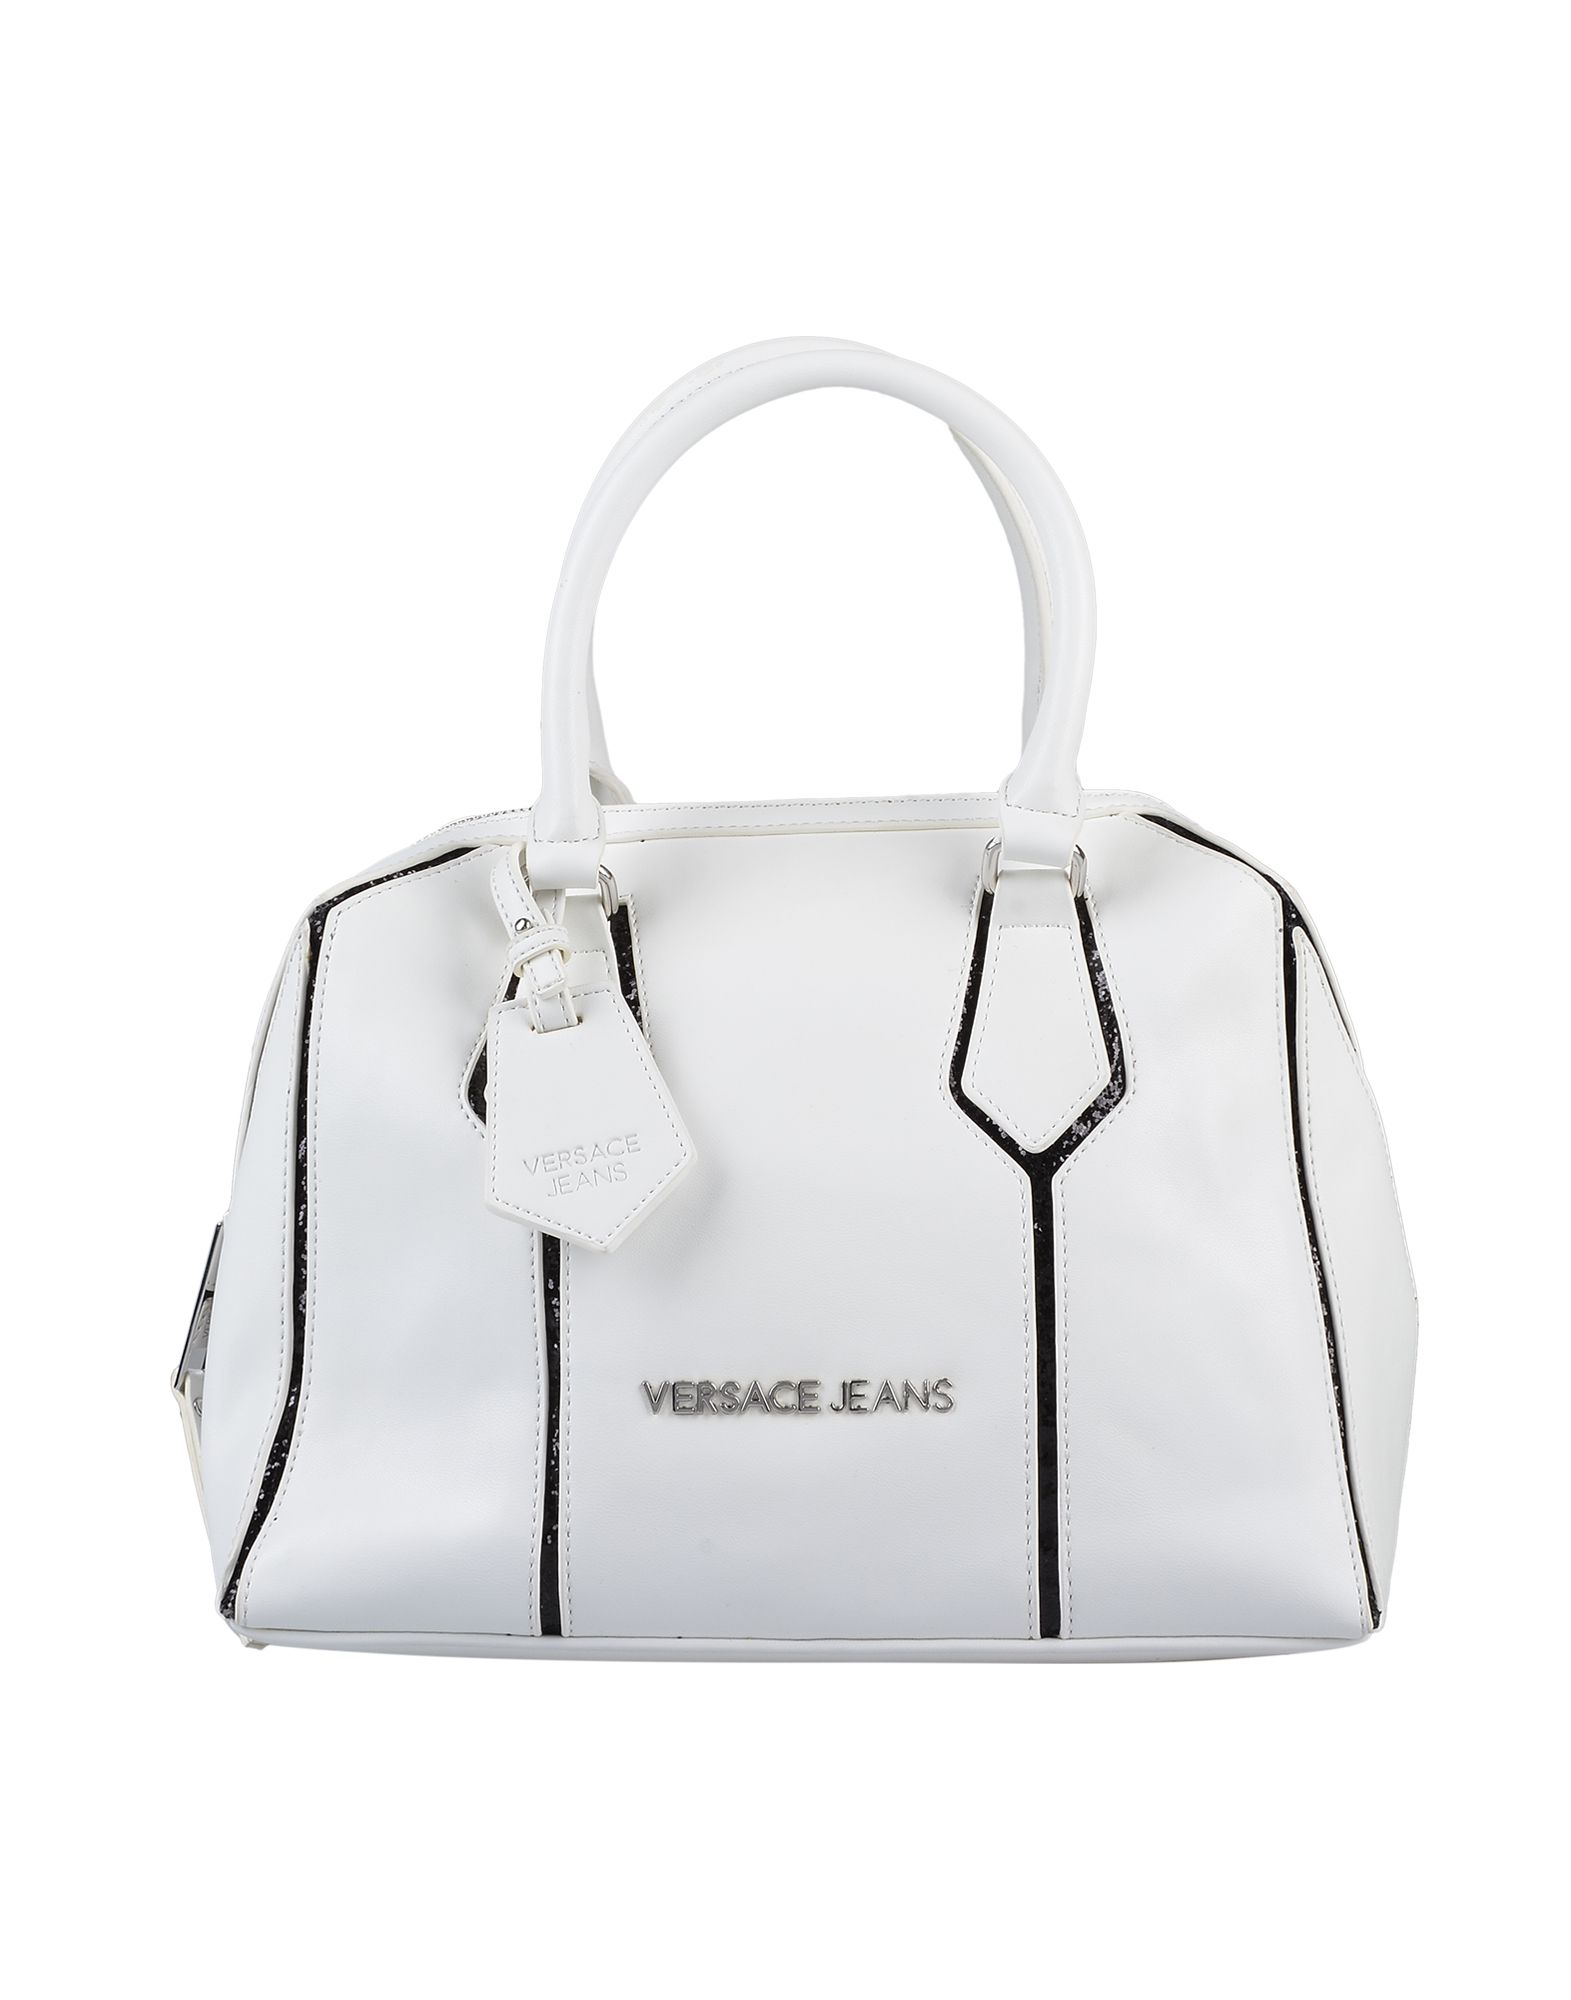 Versace Jeans Women Spring-Summer and Fall-Winter Collections - Shop online  at YOOX 9e2f25cca9